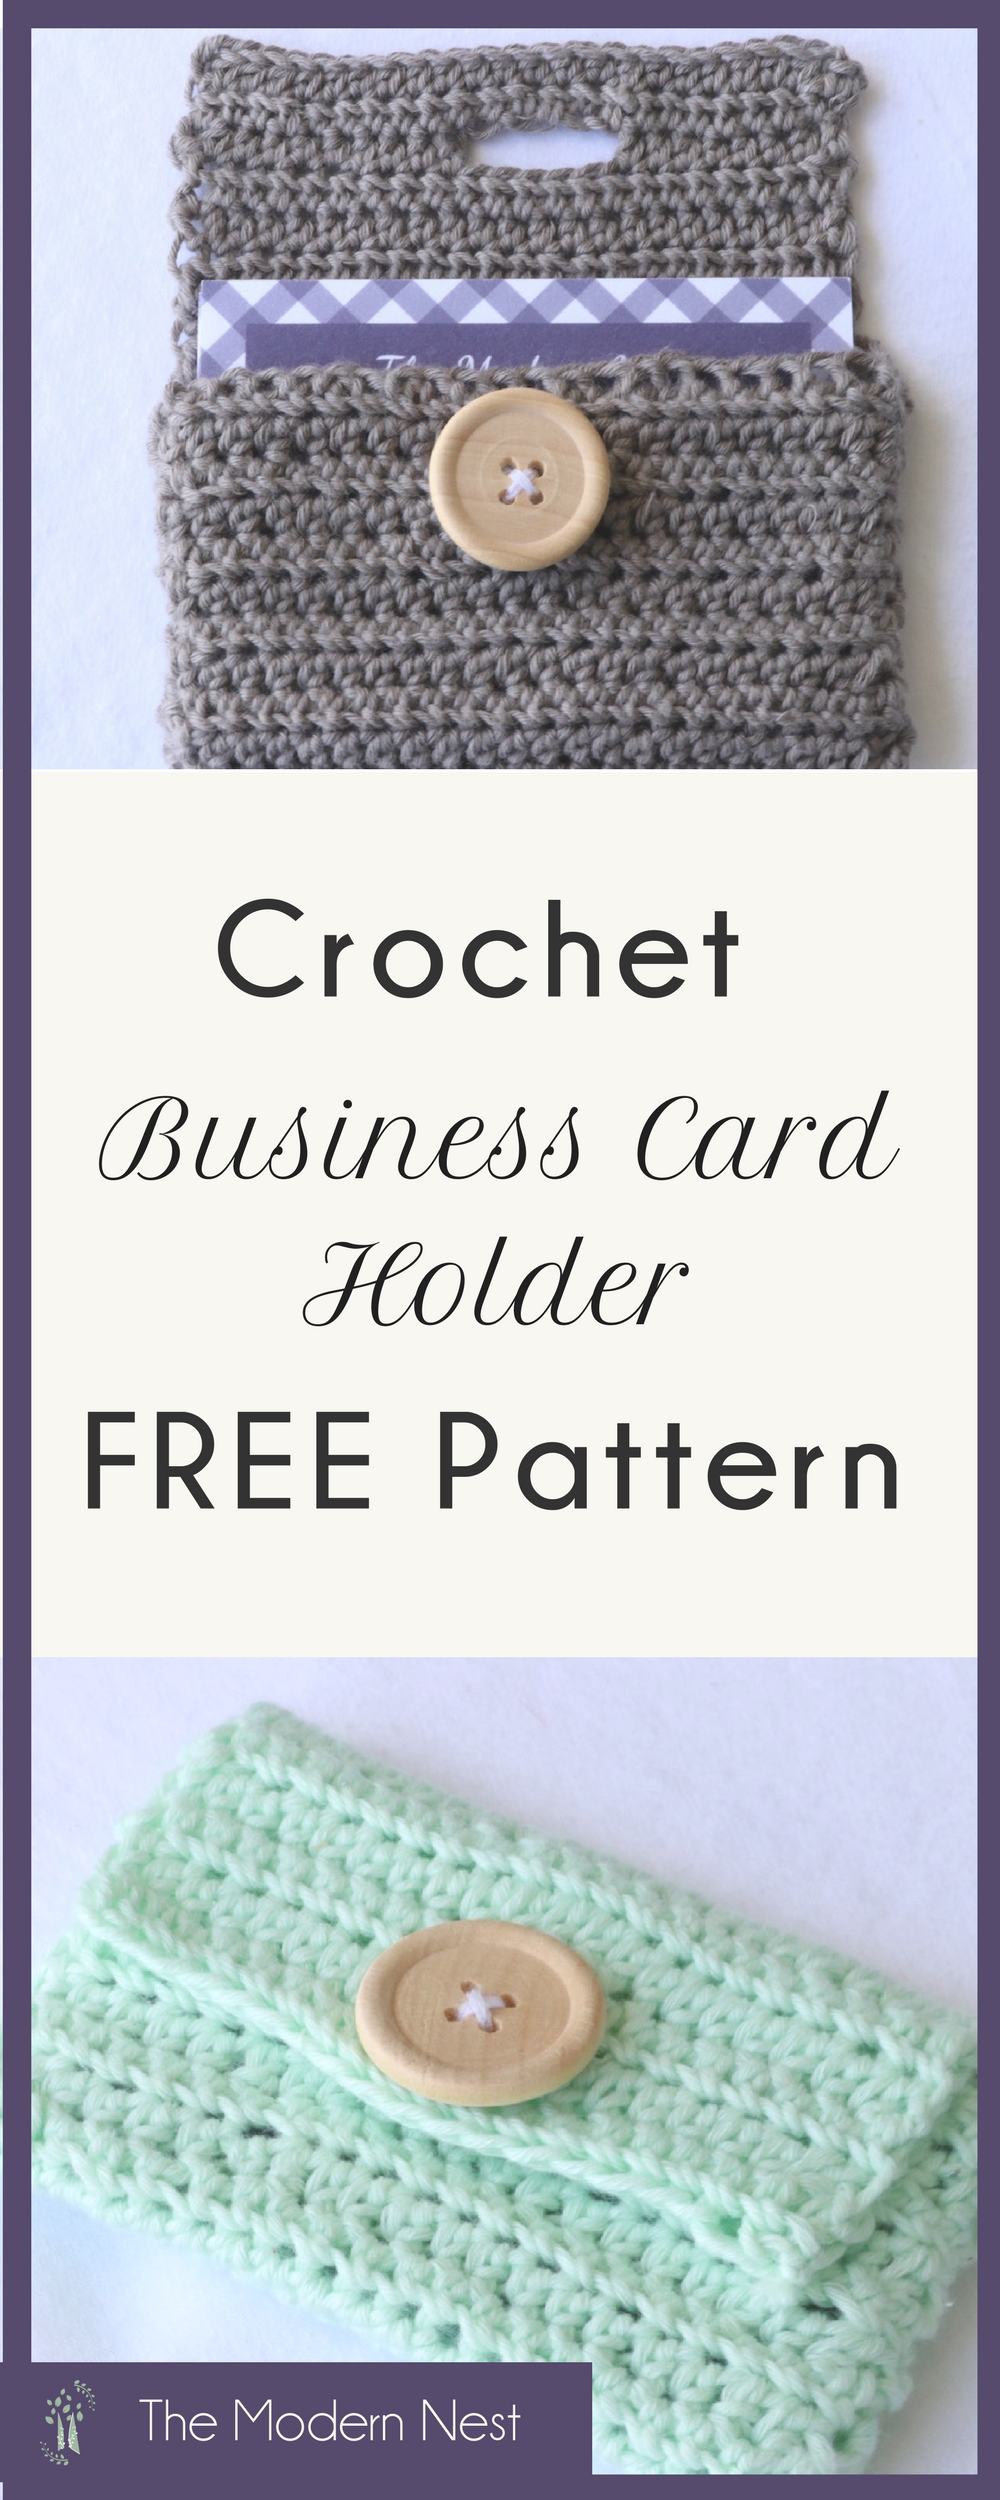 Business card holder crochet pattern pinterest free business do you ever get business cards and dont know where to put them heres a free business card holder crochet pattern to help you keep them organized colourmoves